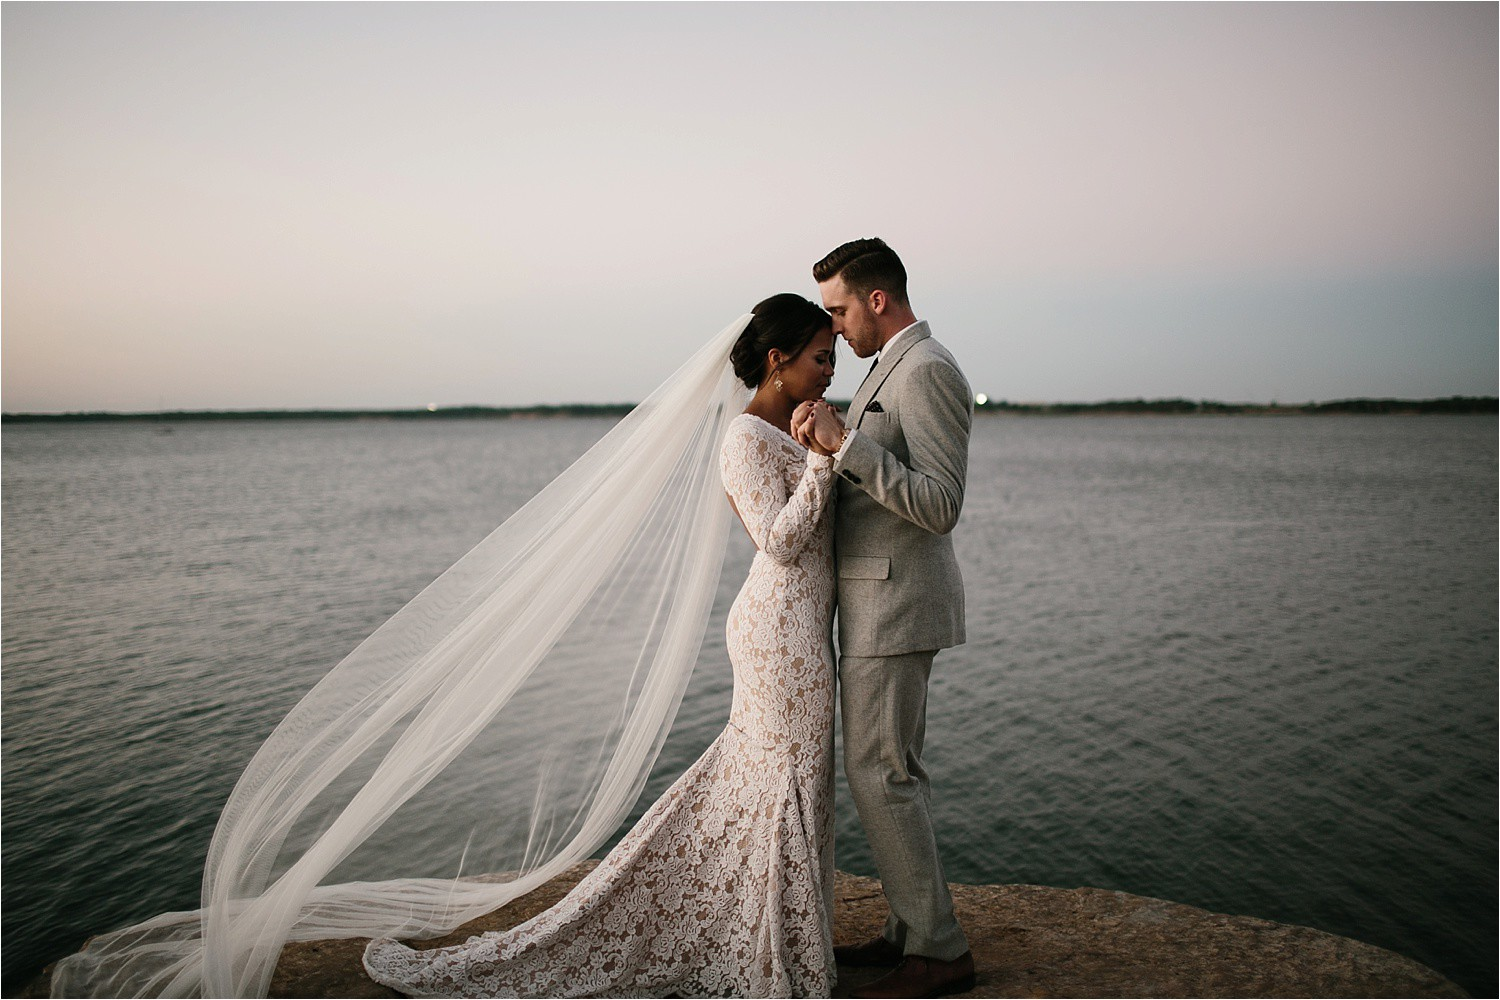 mallory-tyler-__-an-intimate-after-session-at-grapevine-lake-by-north-texas-wedding-photographer-rachel-meagan-photography-_-52